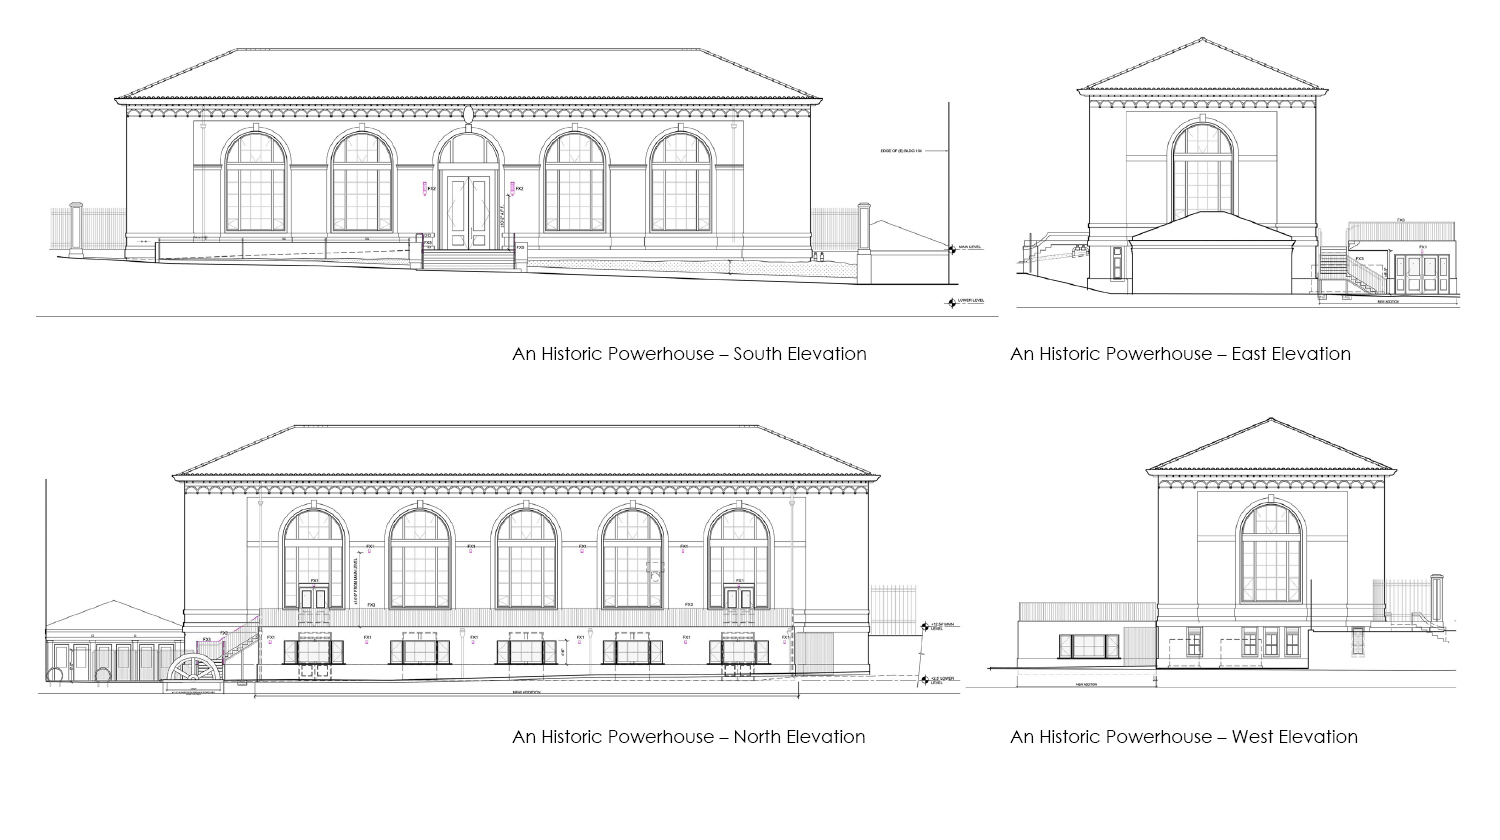 Exterior elevations of the historic powerhouse. Marcy Wong Donn Logan Architects}